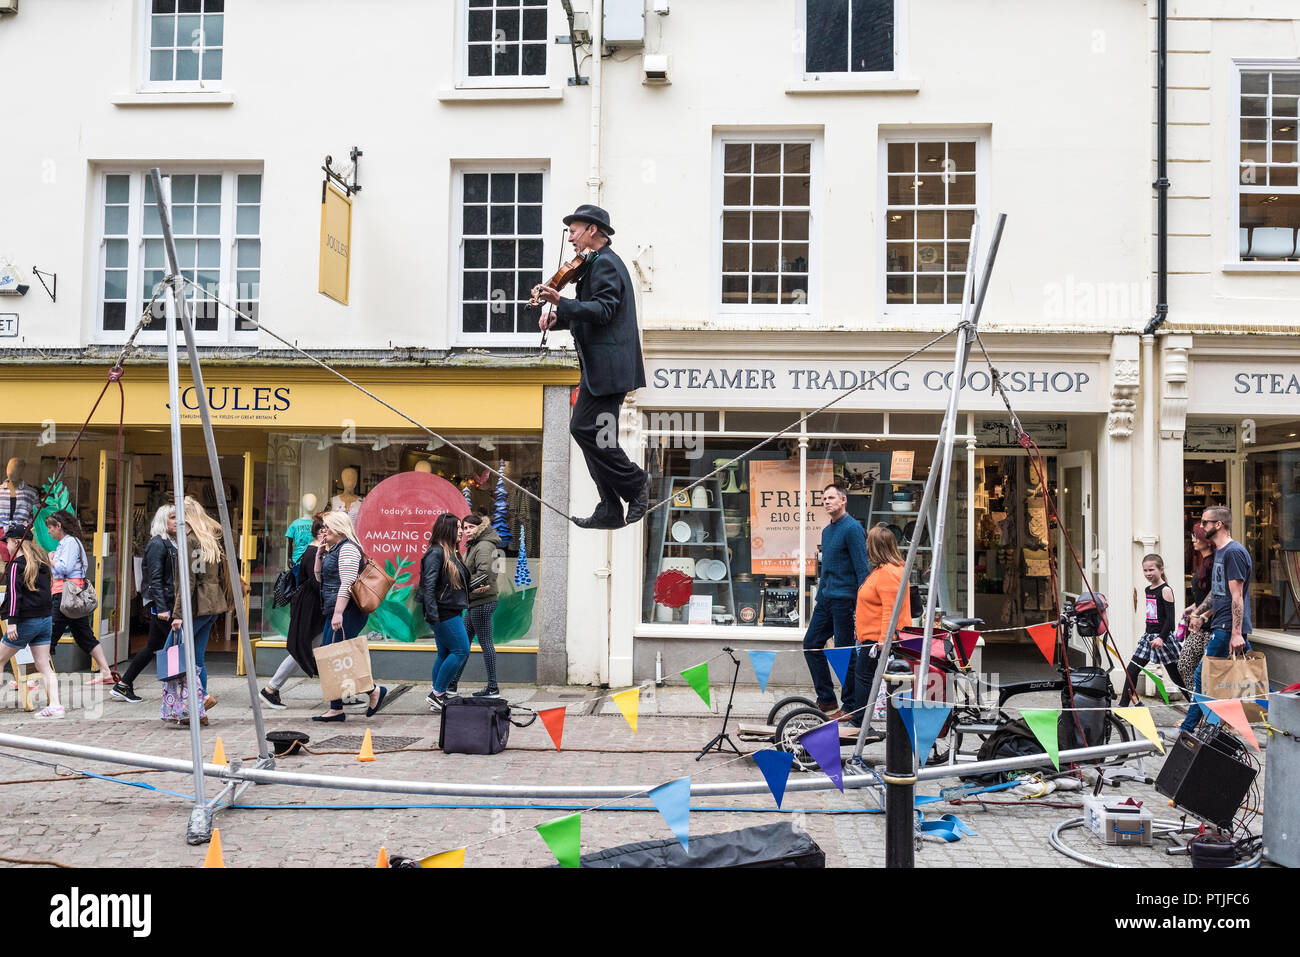 A street entertainer playing the violin and balancing on a slack line in Truro City centre in Cornwall. - Stock Image